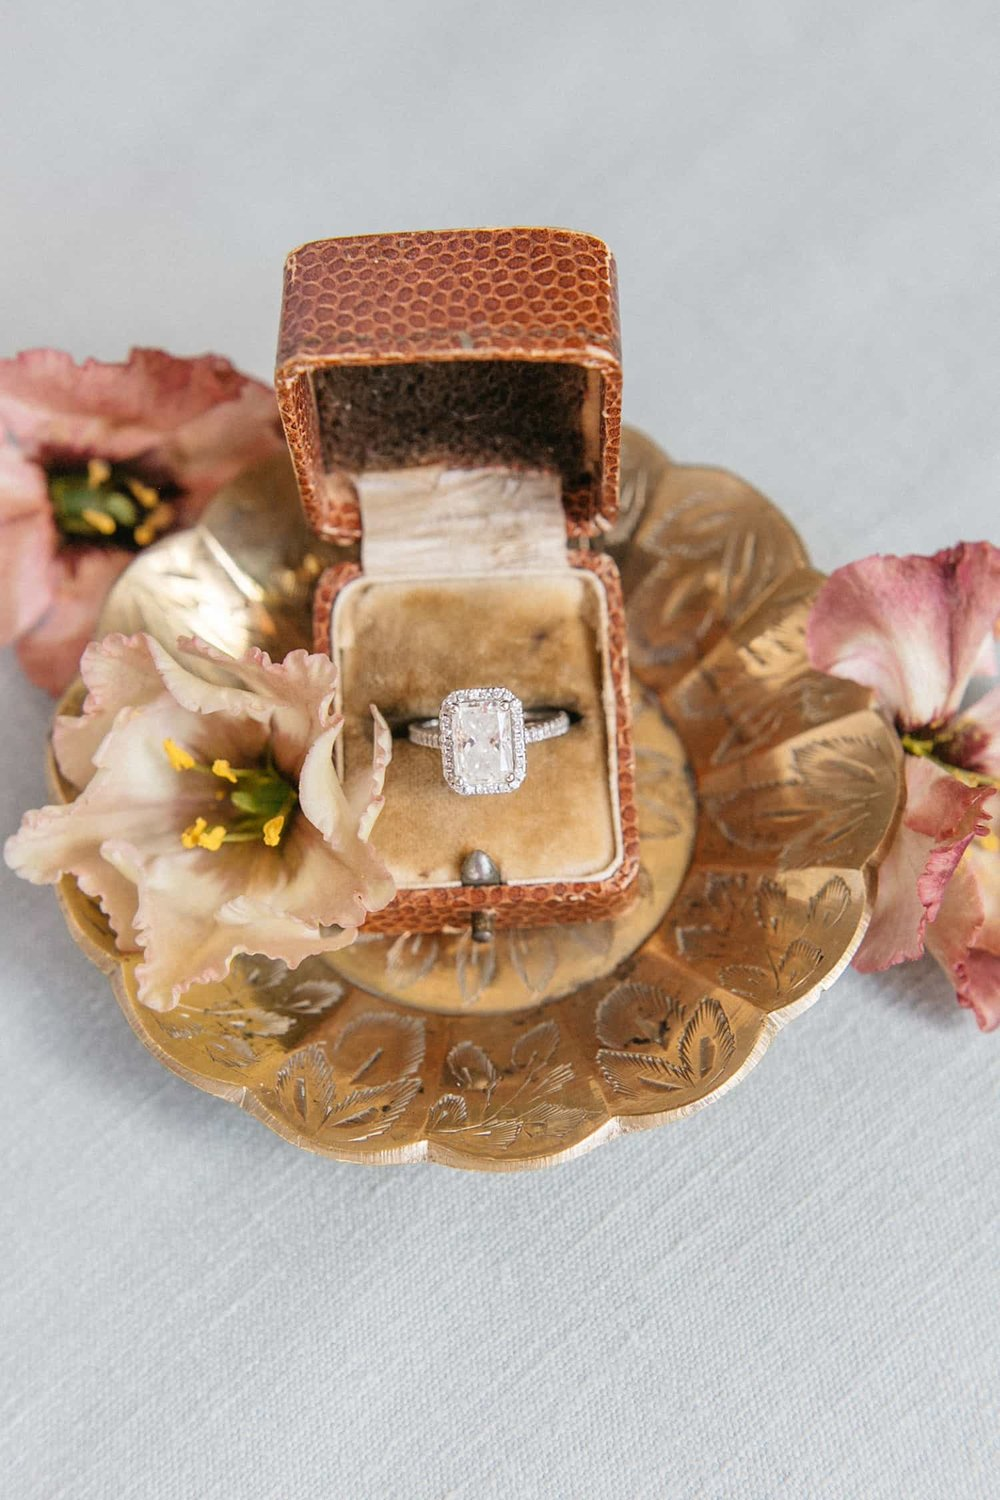 Wedding ring & flowers by Color Theory Collective